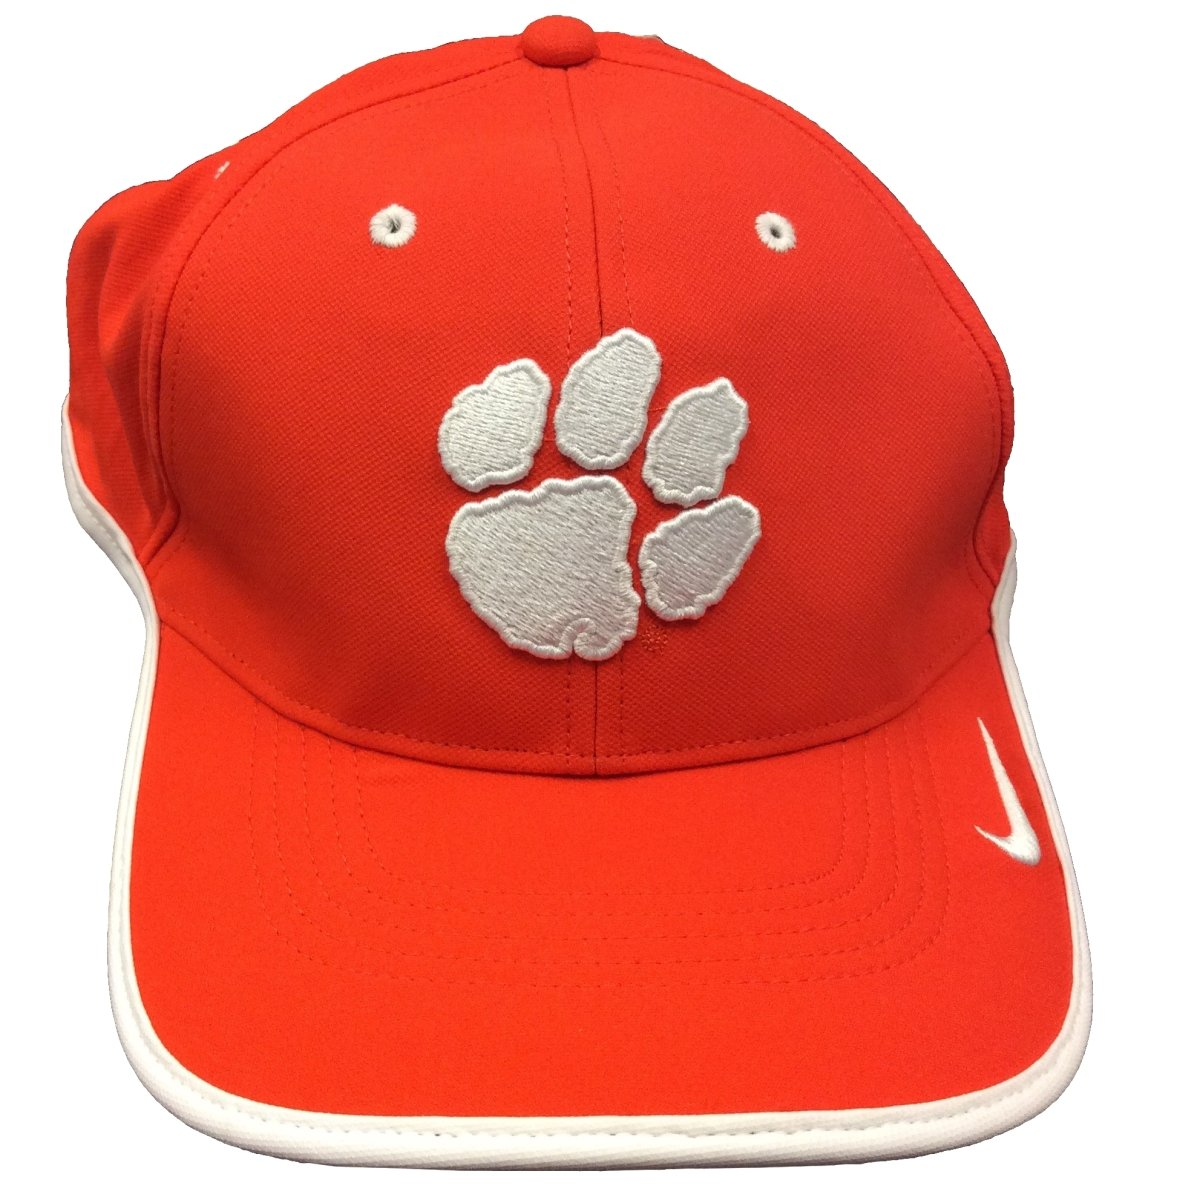 Nike Dri Fit Performance Coaches Cap With White Paw - Adj Fit - Mr. Knickerbocker